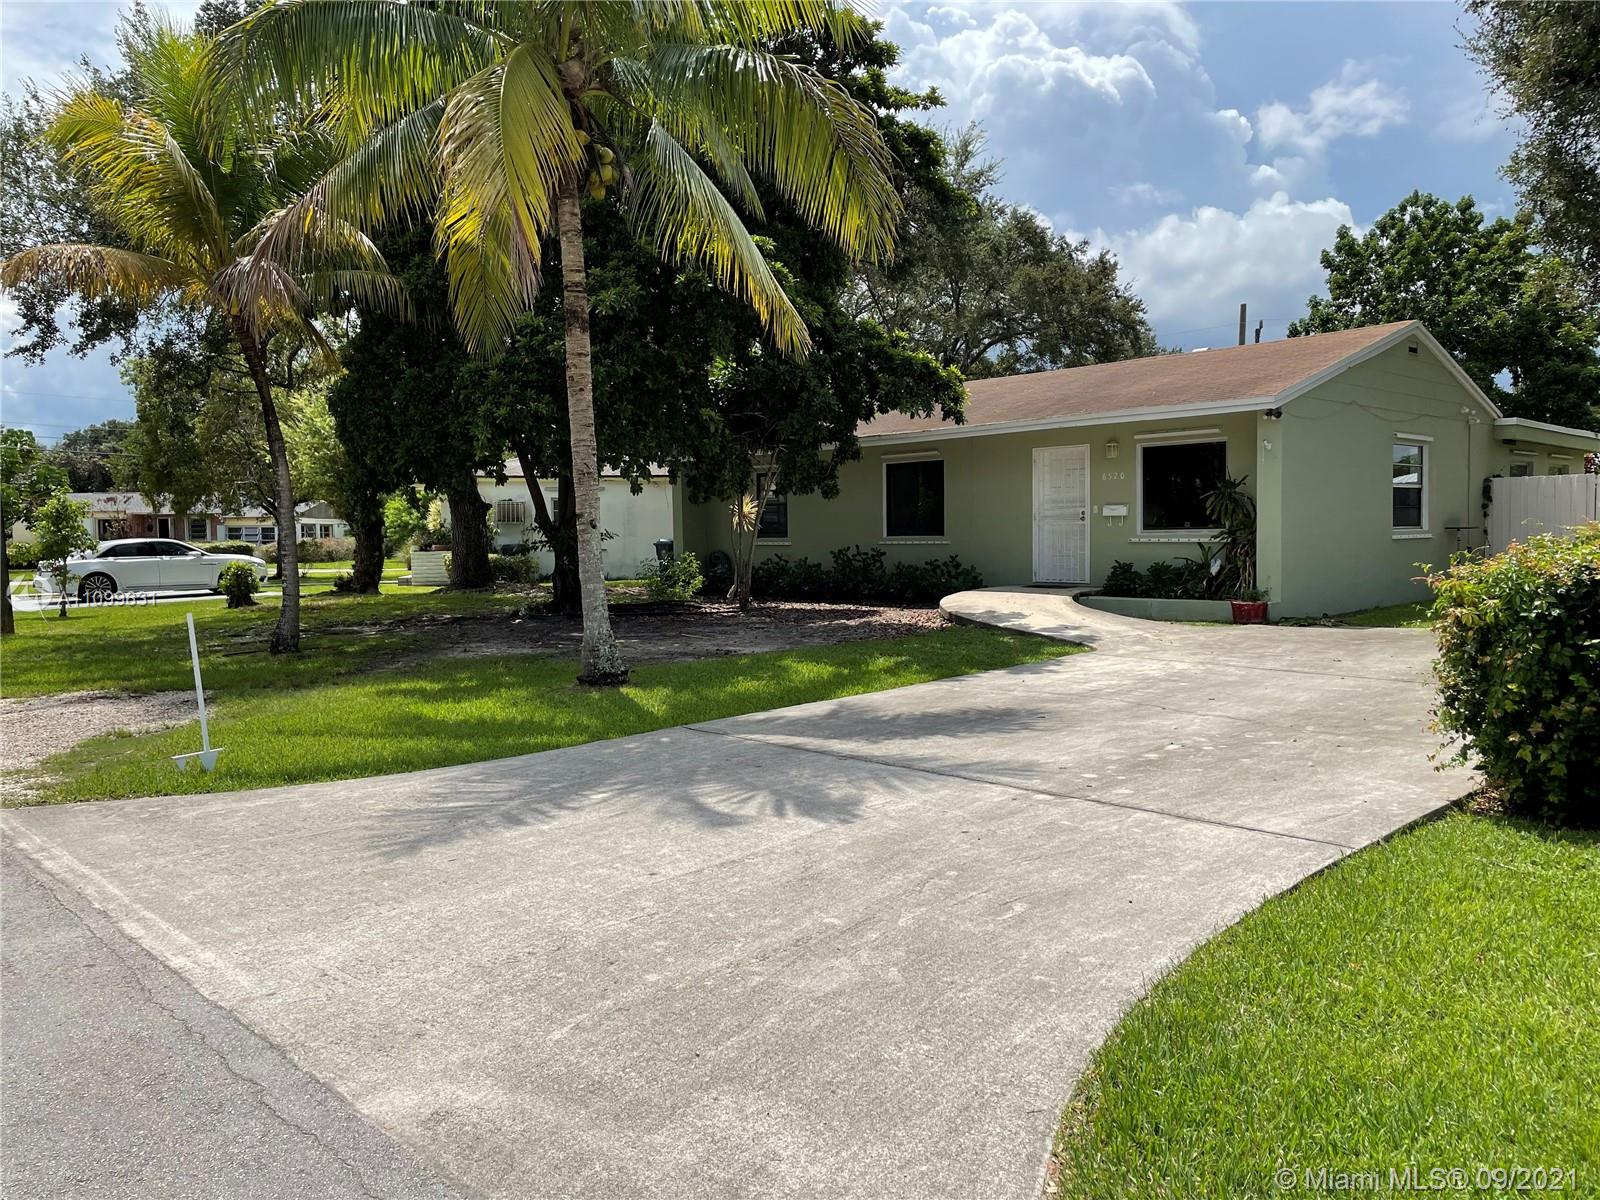 Single Family Home,For Sale,6520 SW 64th Ave, South Miami, Florida 33143,Brickell,realty,broker,condos near me